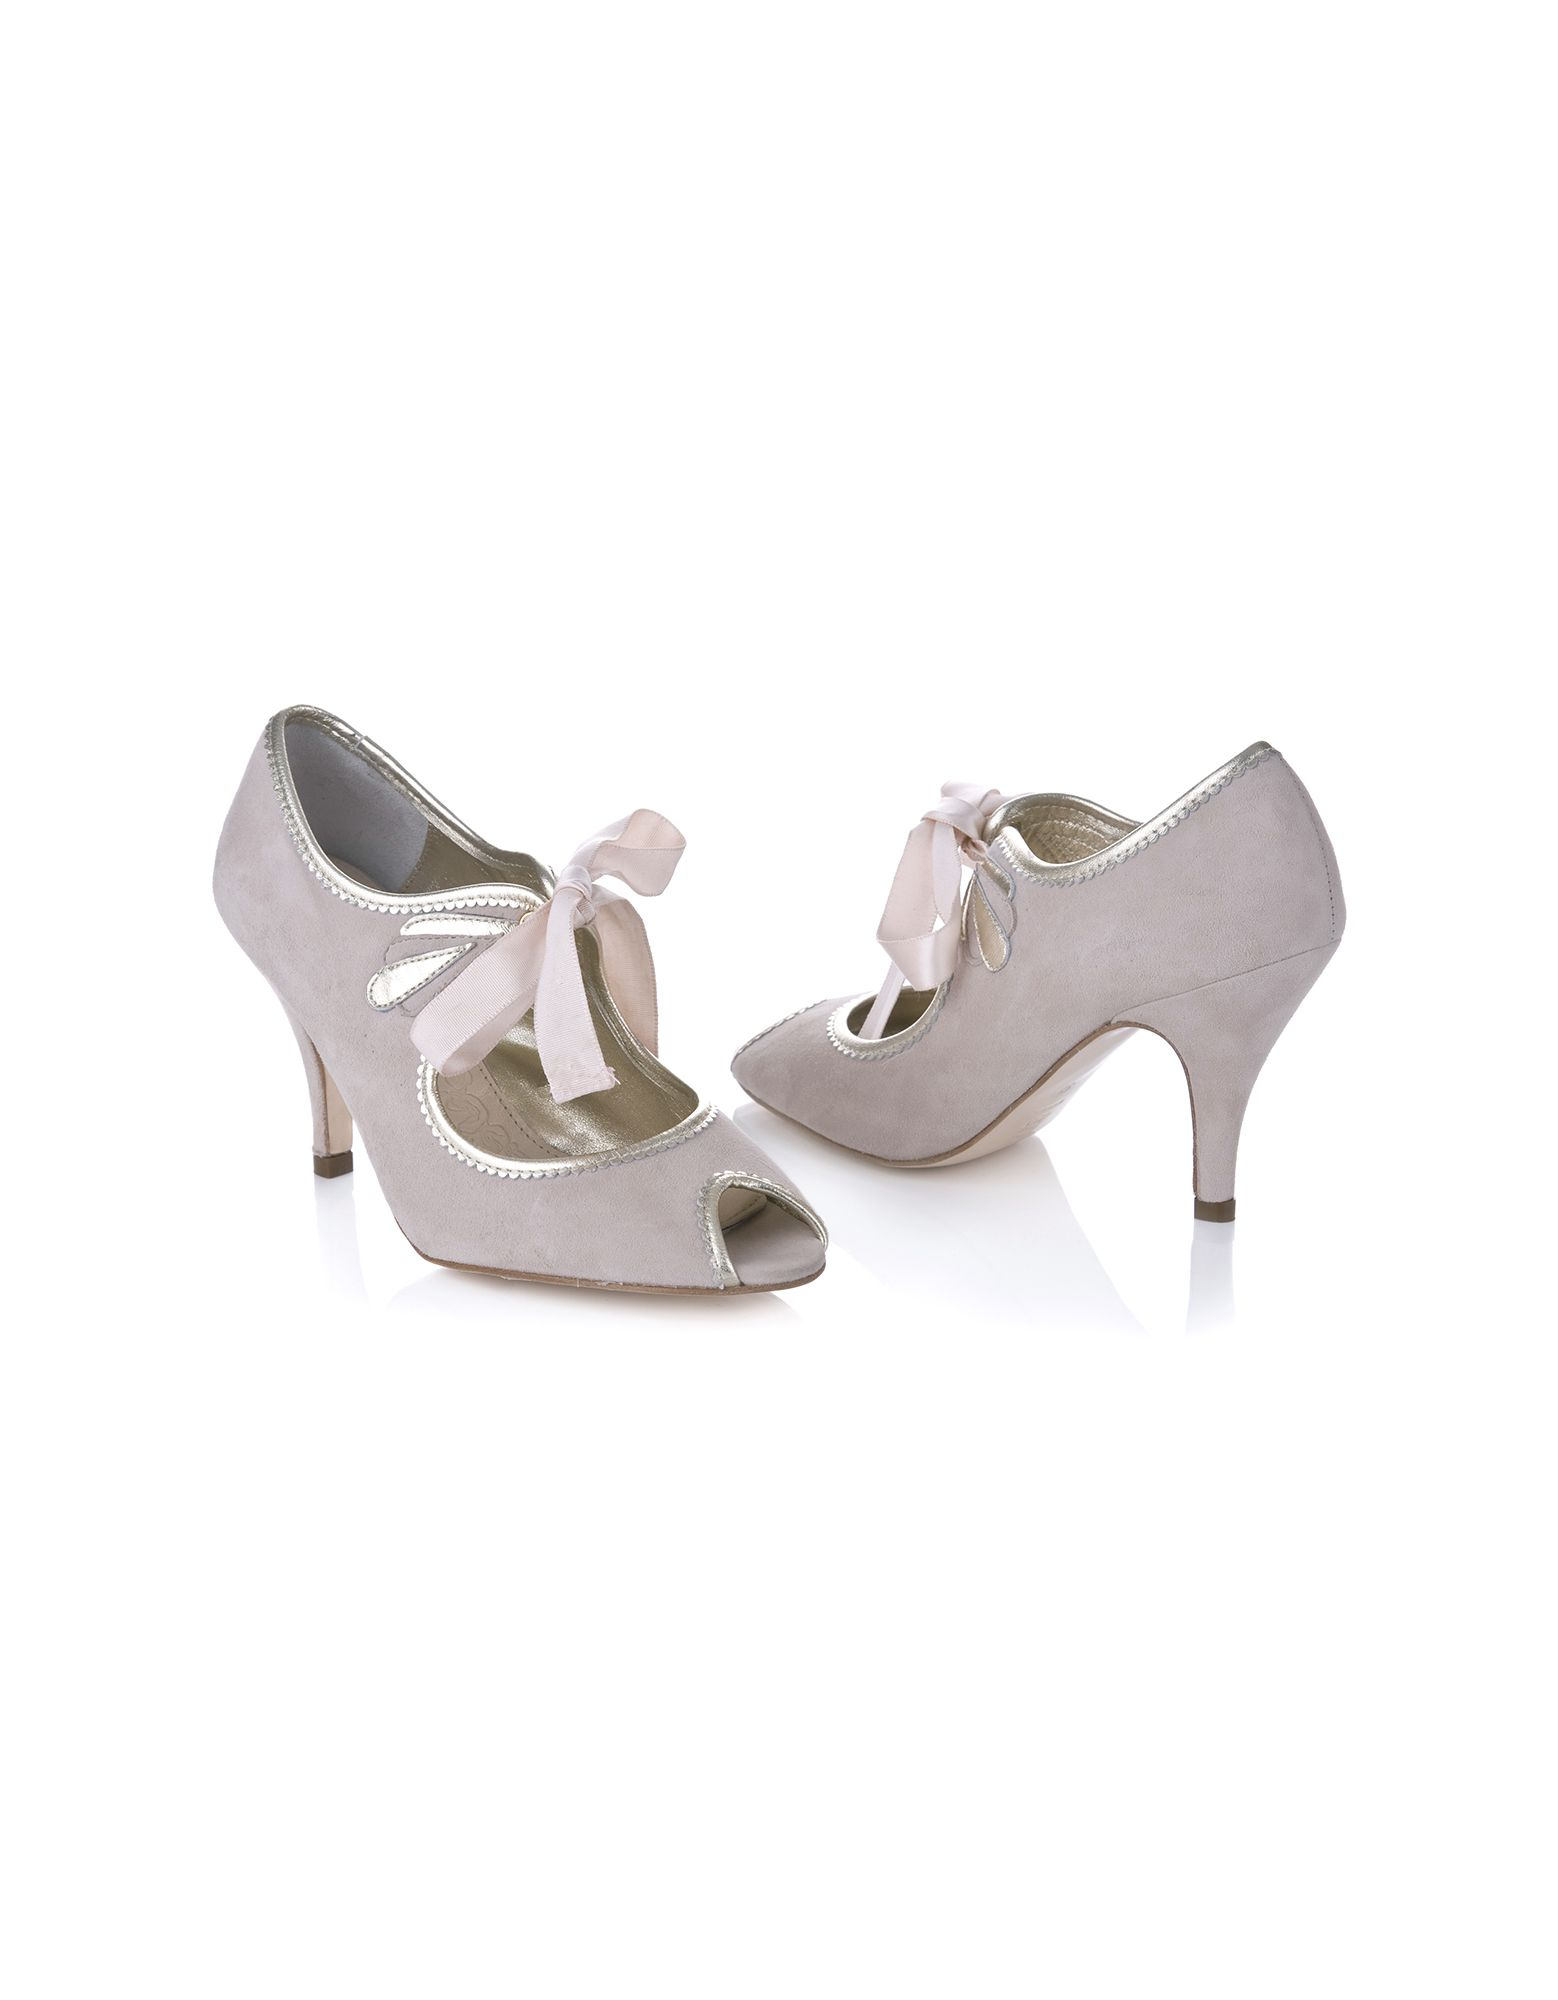 ebf6b48a1 Agnes Blush Suede Wedding Shoes are super pretty little Peep Toe-toes with  a cute vintage look. They are made from beautifully soft kid suede in a  subtle ...